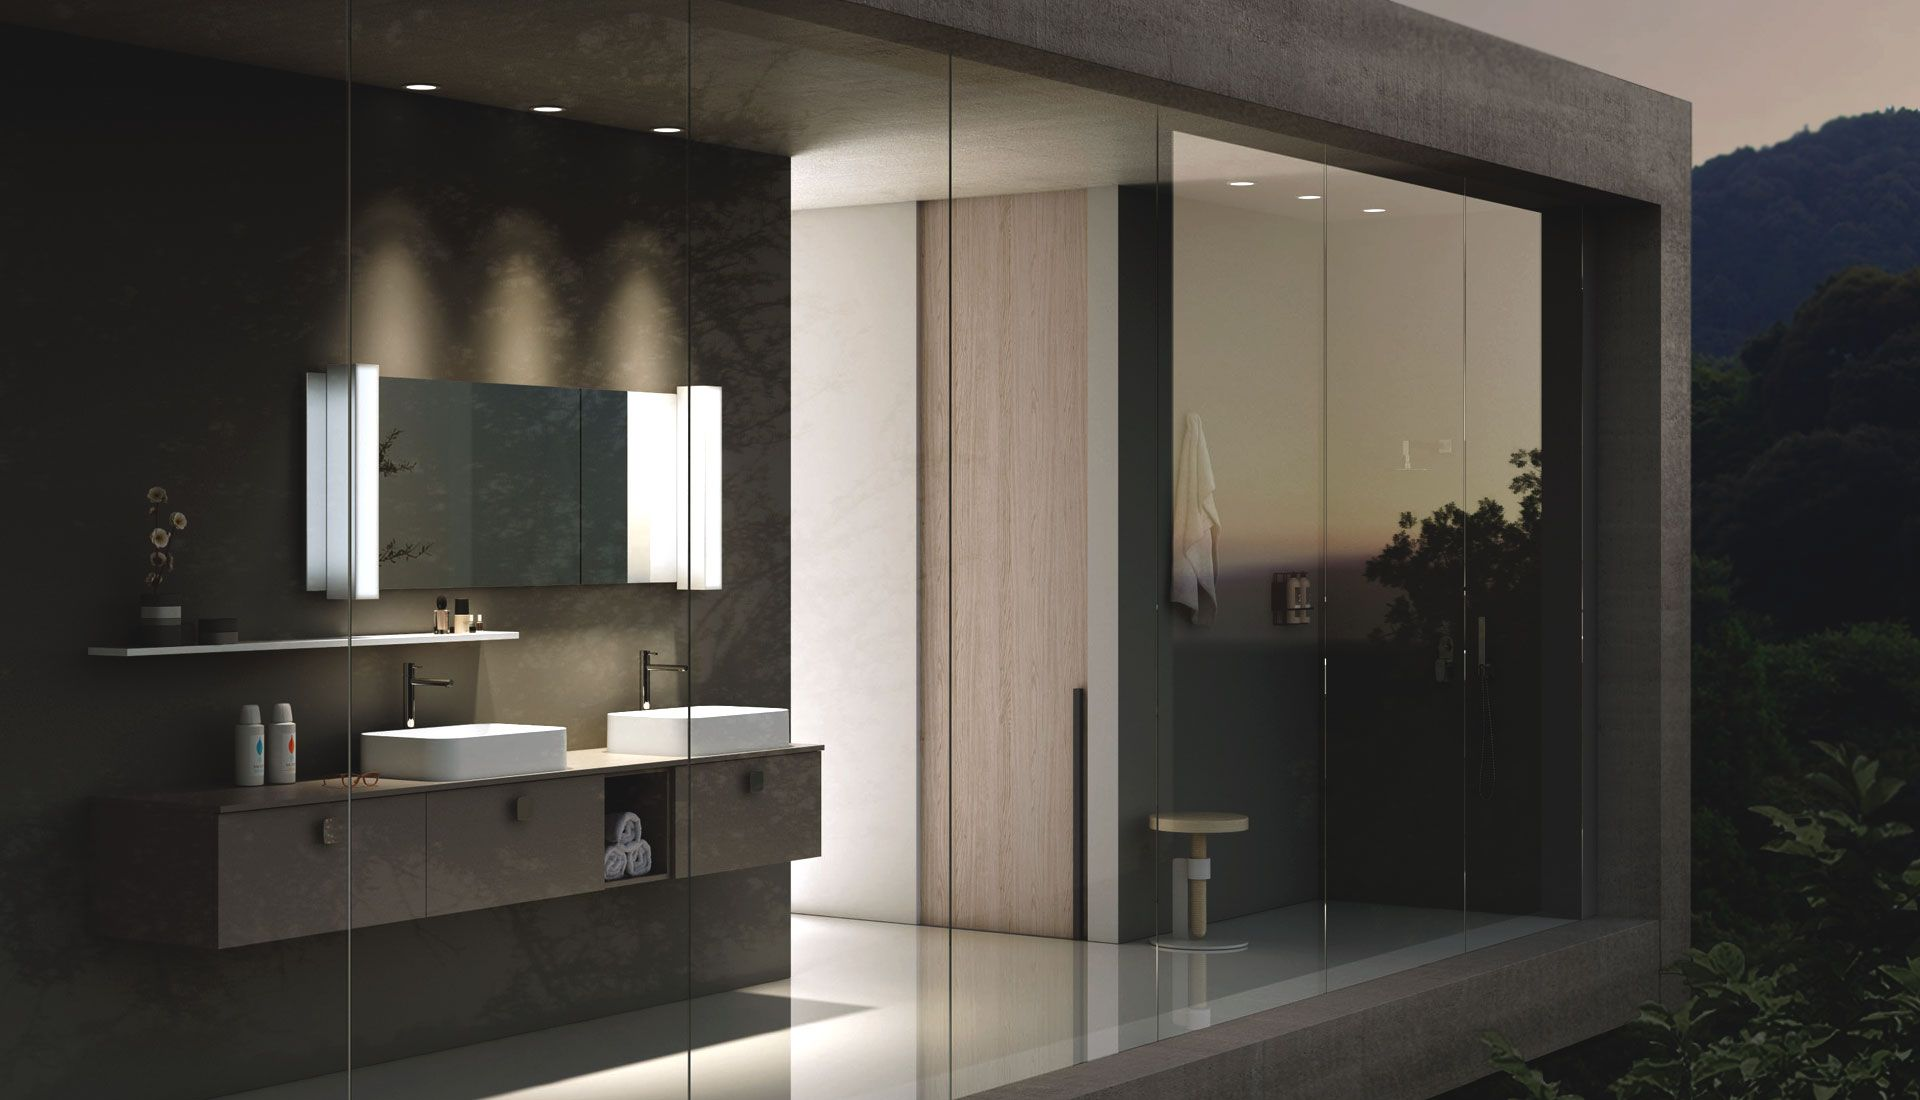 Puntotre Bathrooms Manufactures Bathroom Furniture Solutions And Projects Tailored To The Decor Of Modern Design